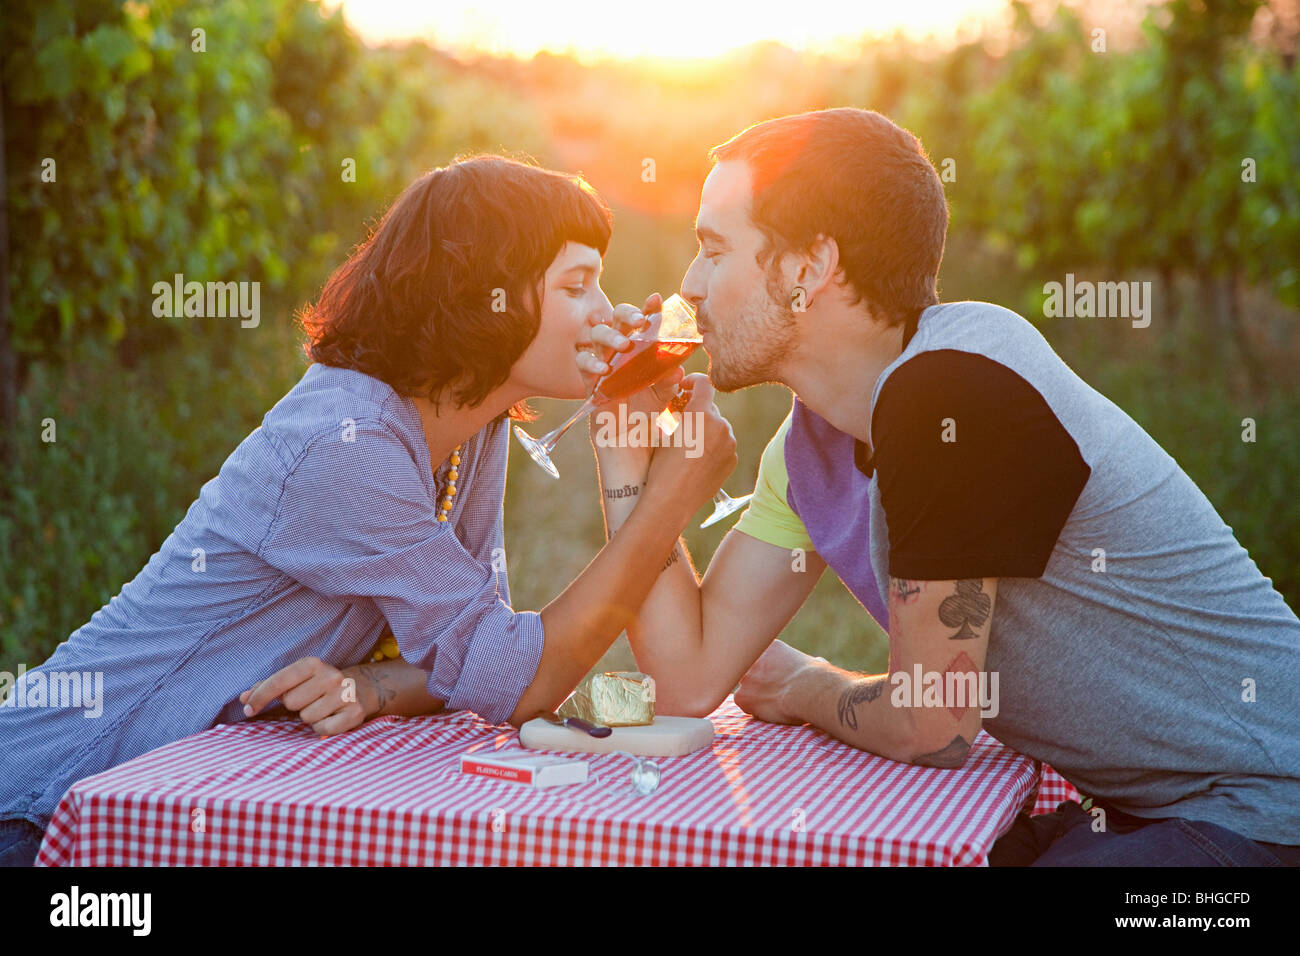 Couple drinking wine in a field - Stock Image